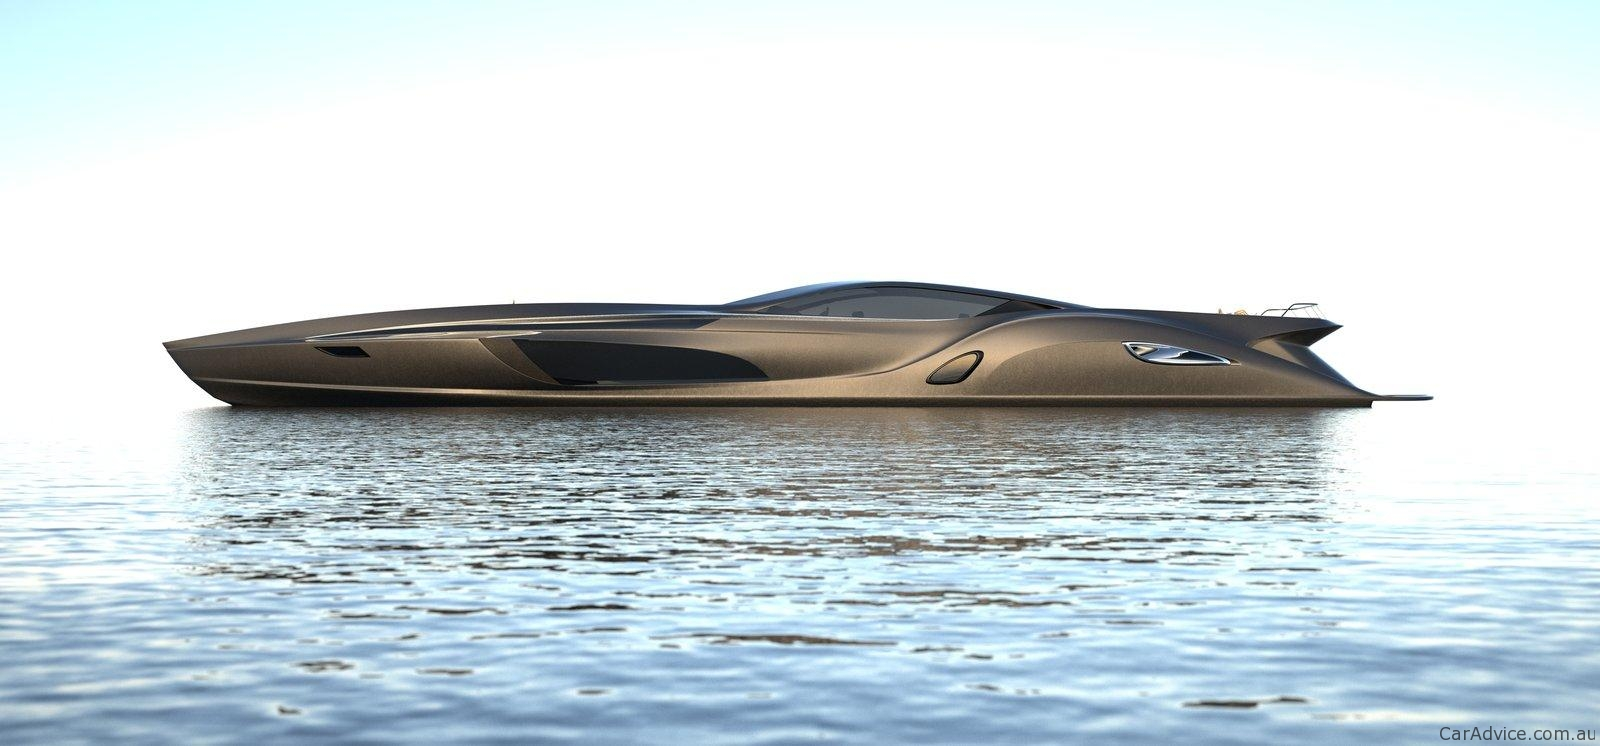 Strand Craft 166 By Grey Design Superyacht With Supercar